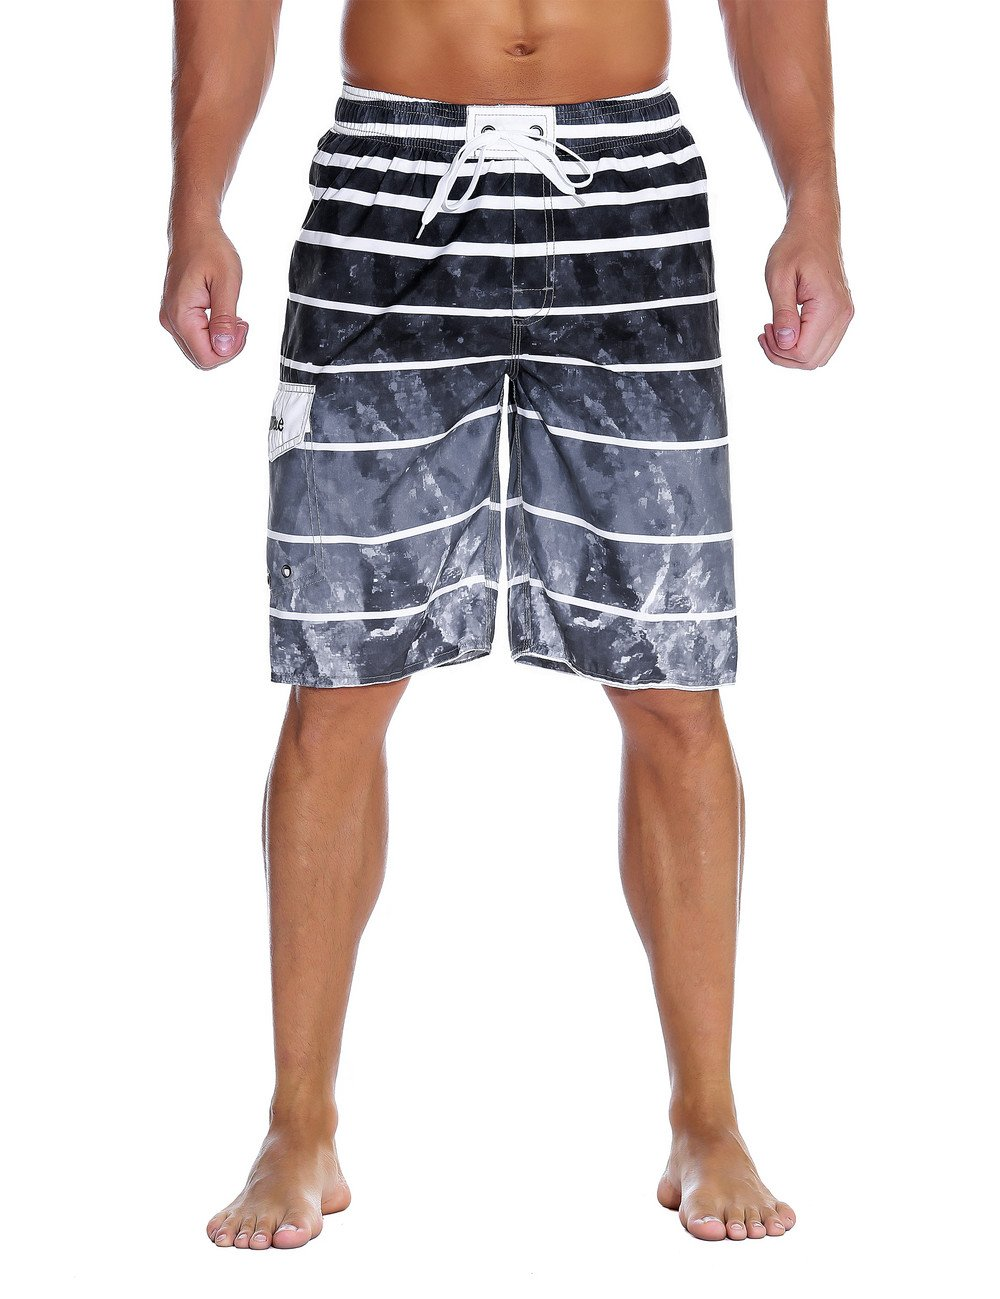 Nonwe Men's Beachwear Quick Dry Holiday Drawstring Striped Swim Trunks Gray Pattern 38 by Nonwe